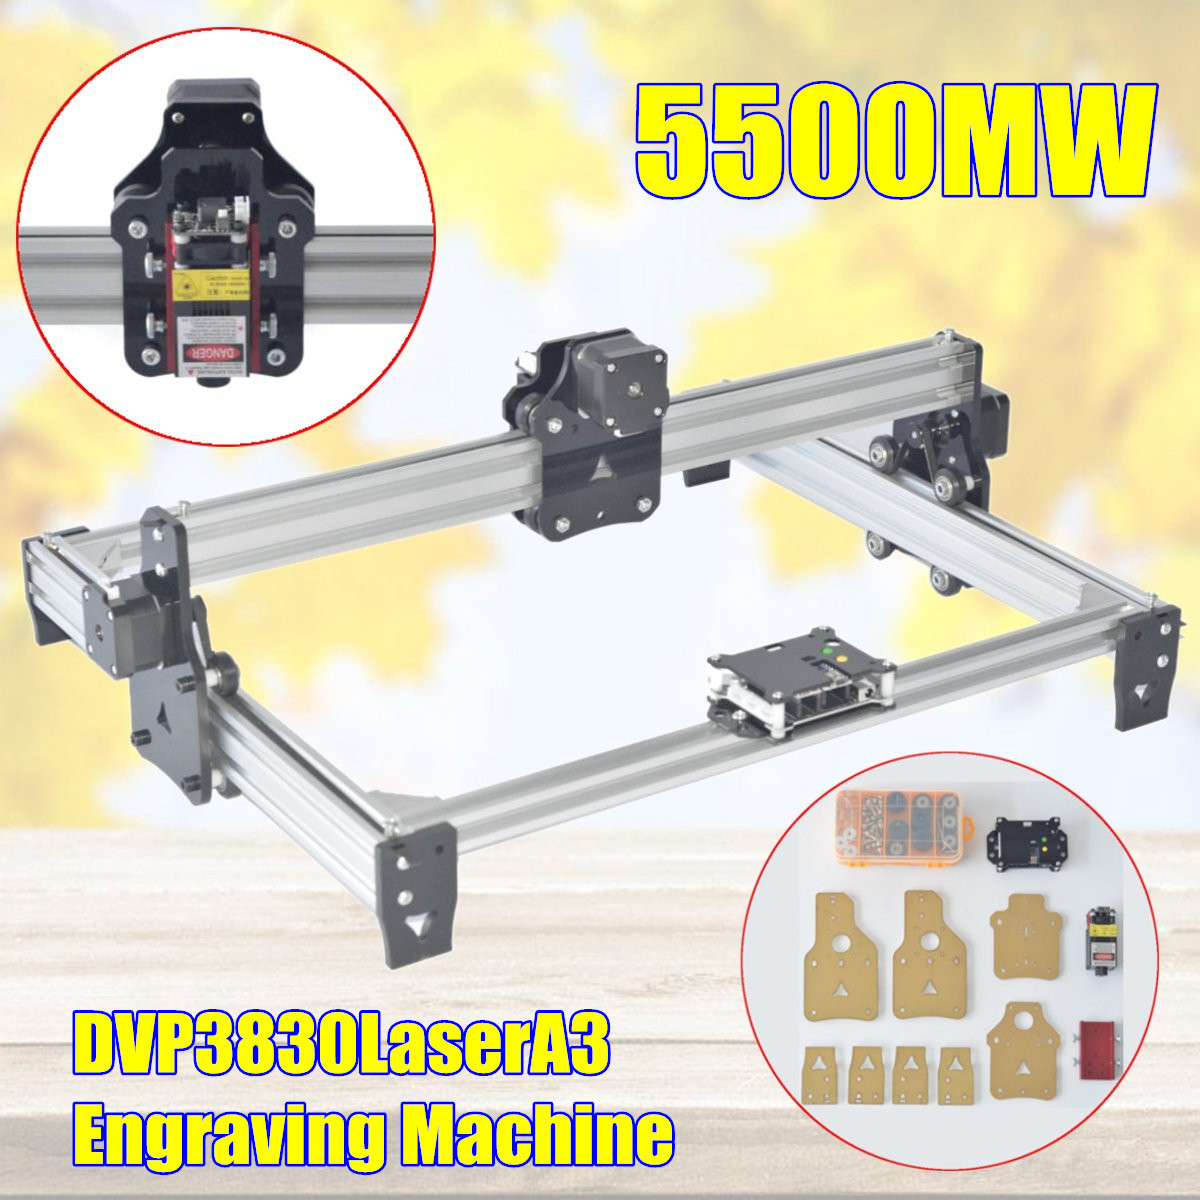 5500mw DVP 3830 Laser A3 Engraving Machine,DIY Laser Engraver Machine,Wood Router,laser cutter,cnc router,Woodworking Machinery футболка wearcraft premium slim fit printio девушка с татуировкой дракона